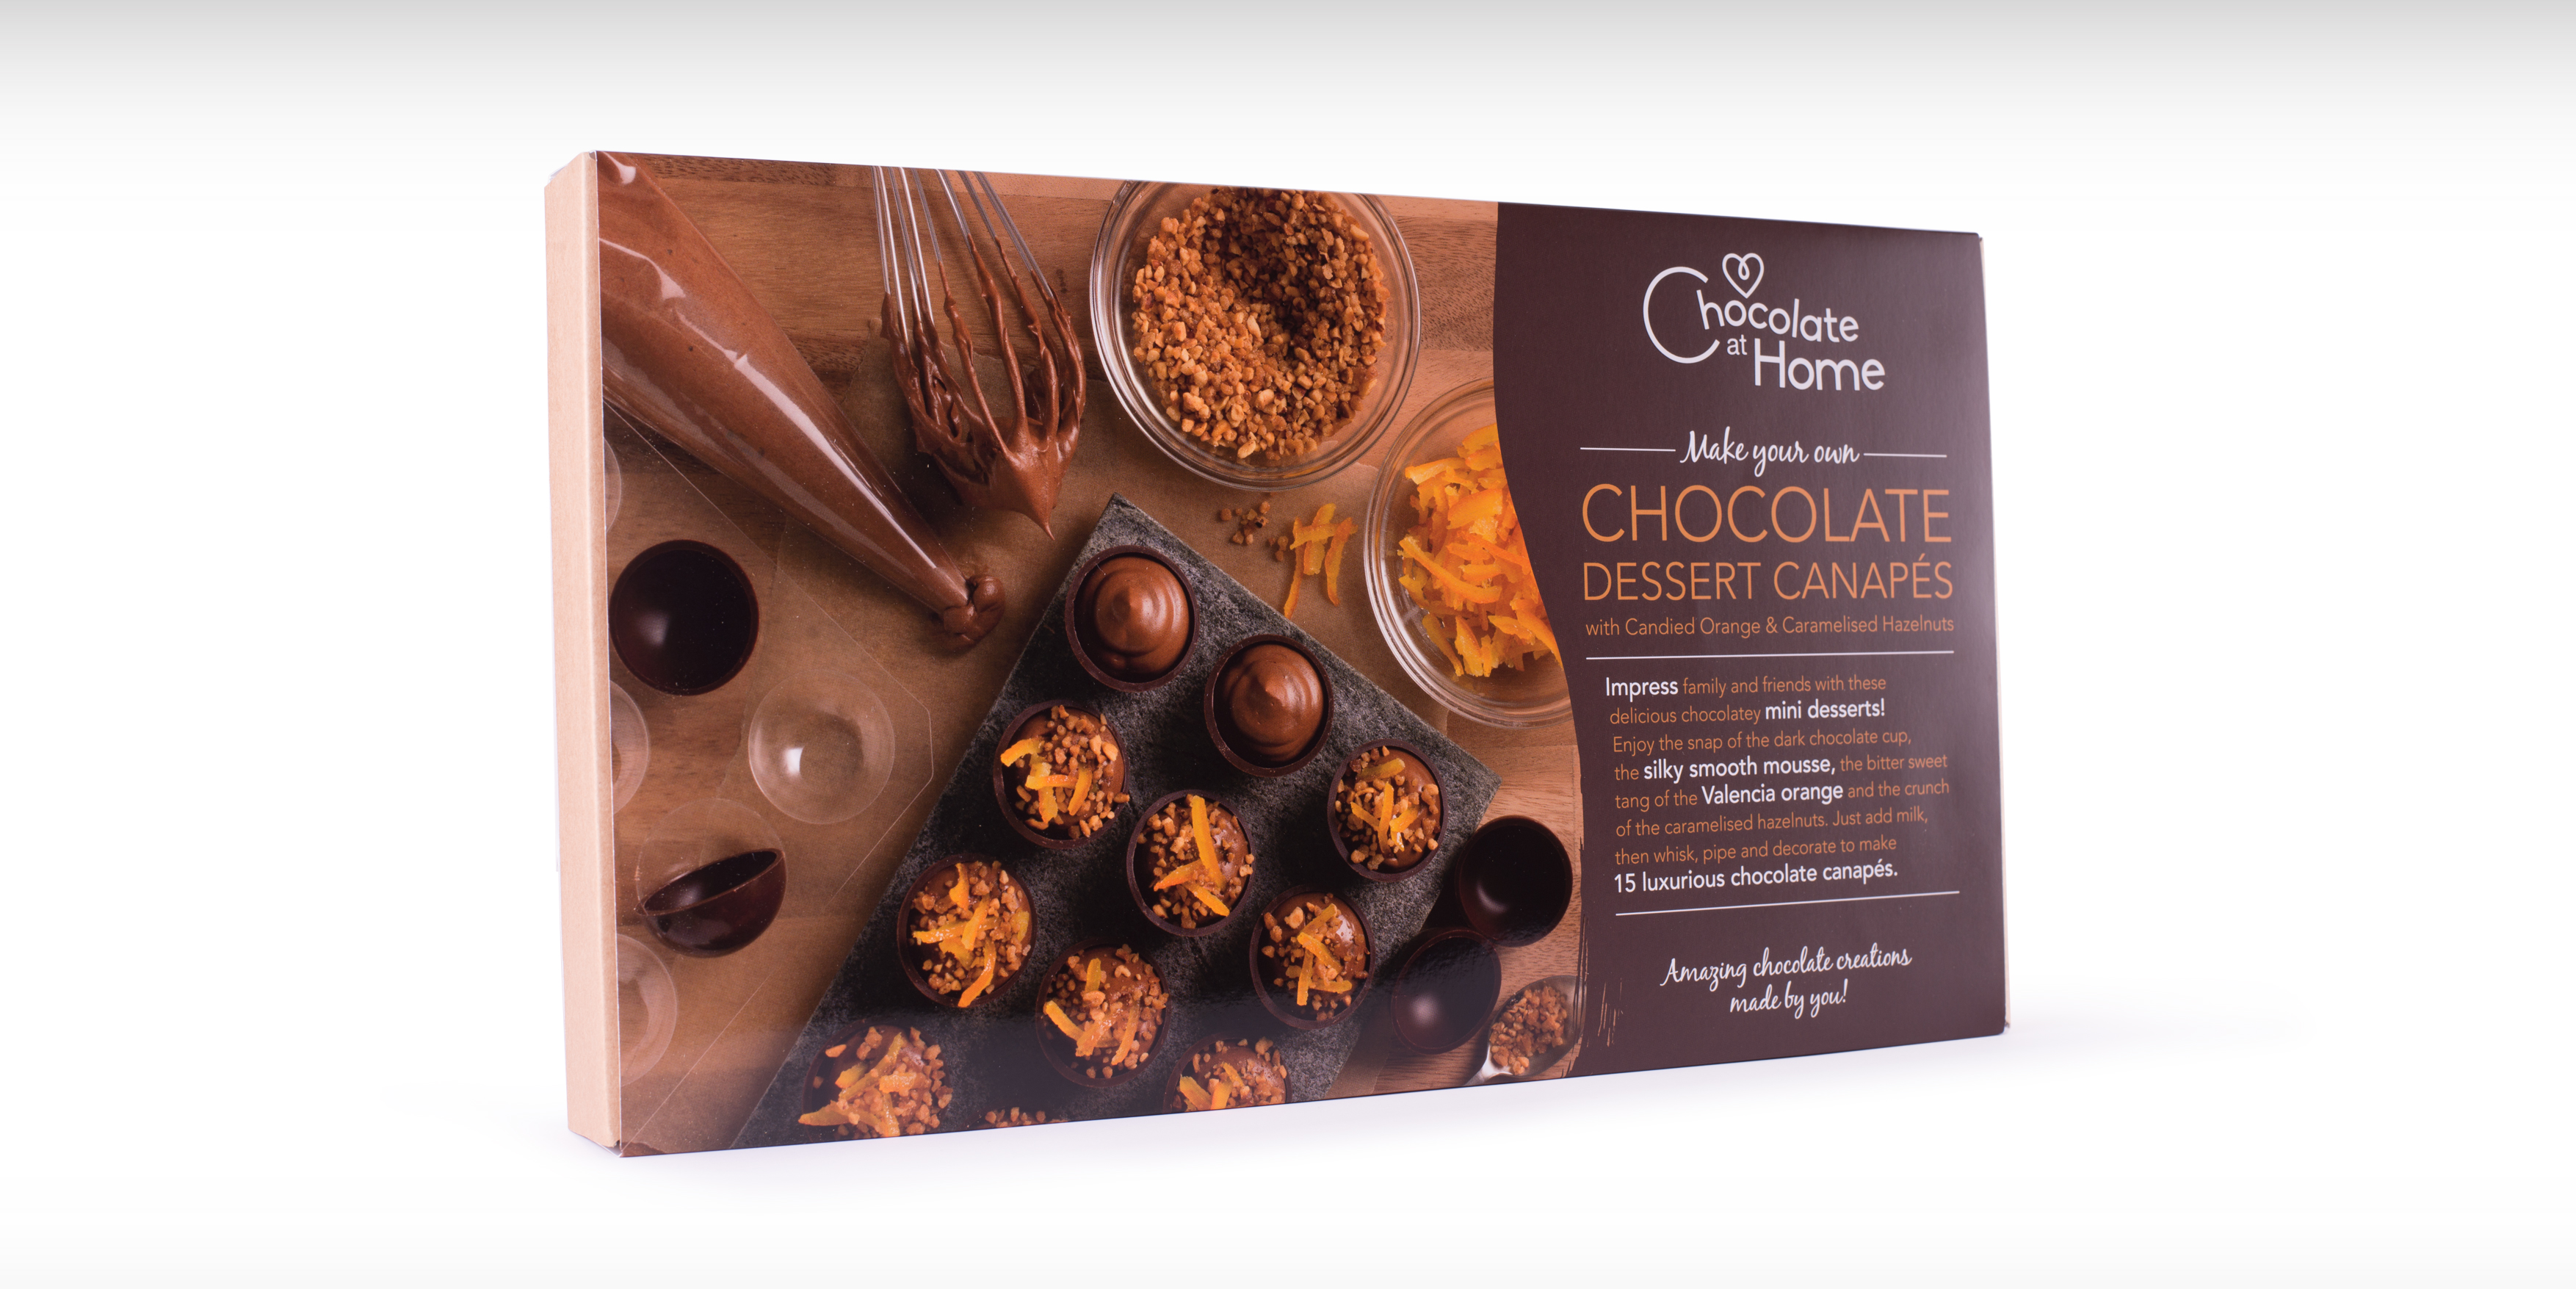 Chocolate at Home Branding and Packaging